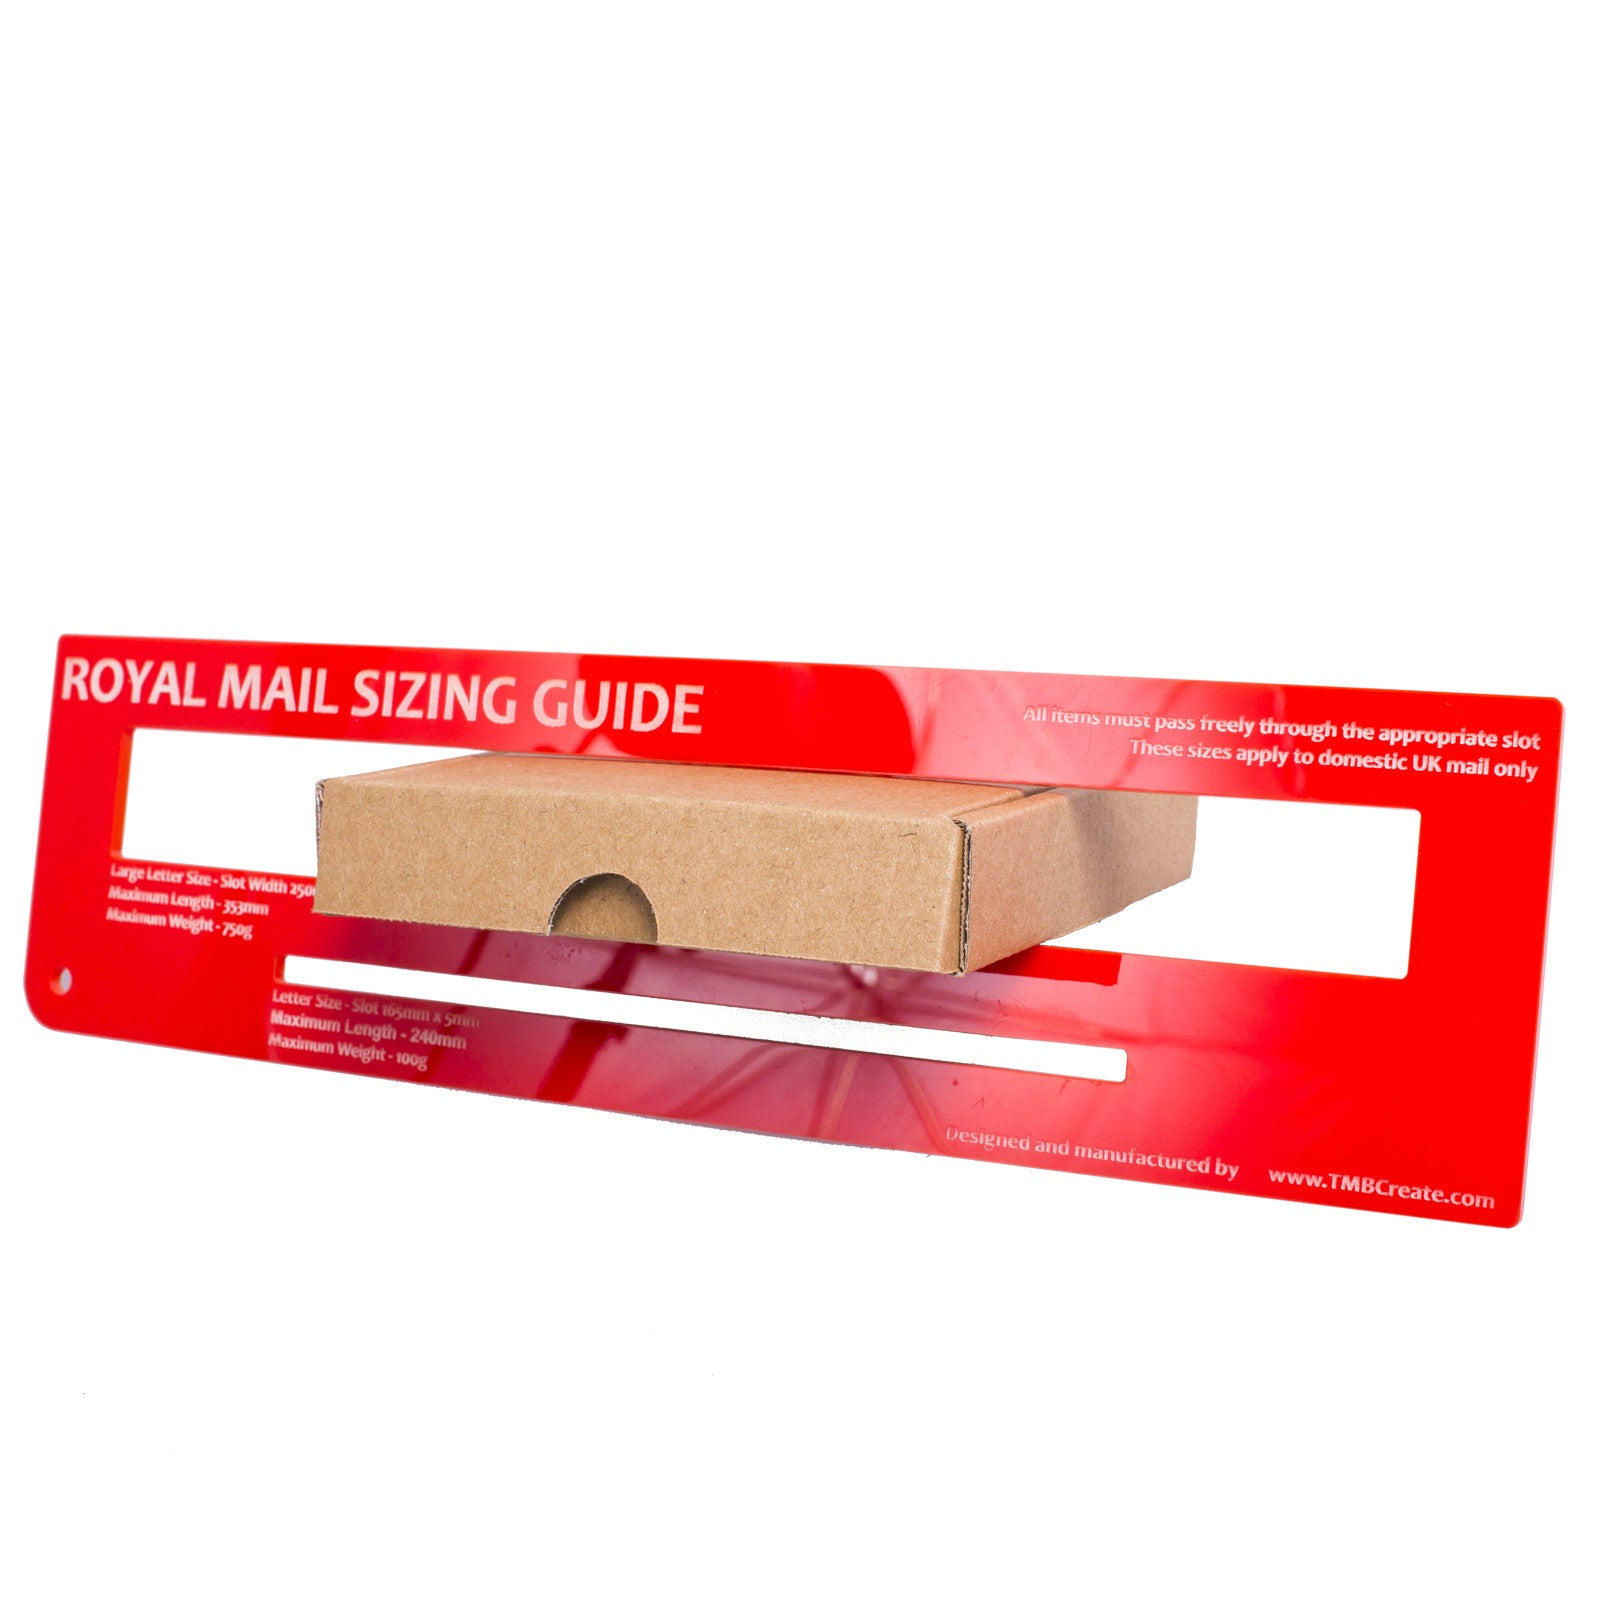 Mini PiP Royal Mail Large Letter PiP Cardboard Boxes,SR Mailing,